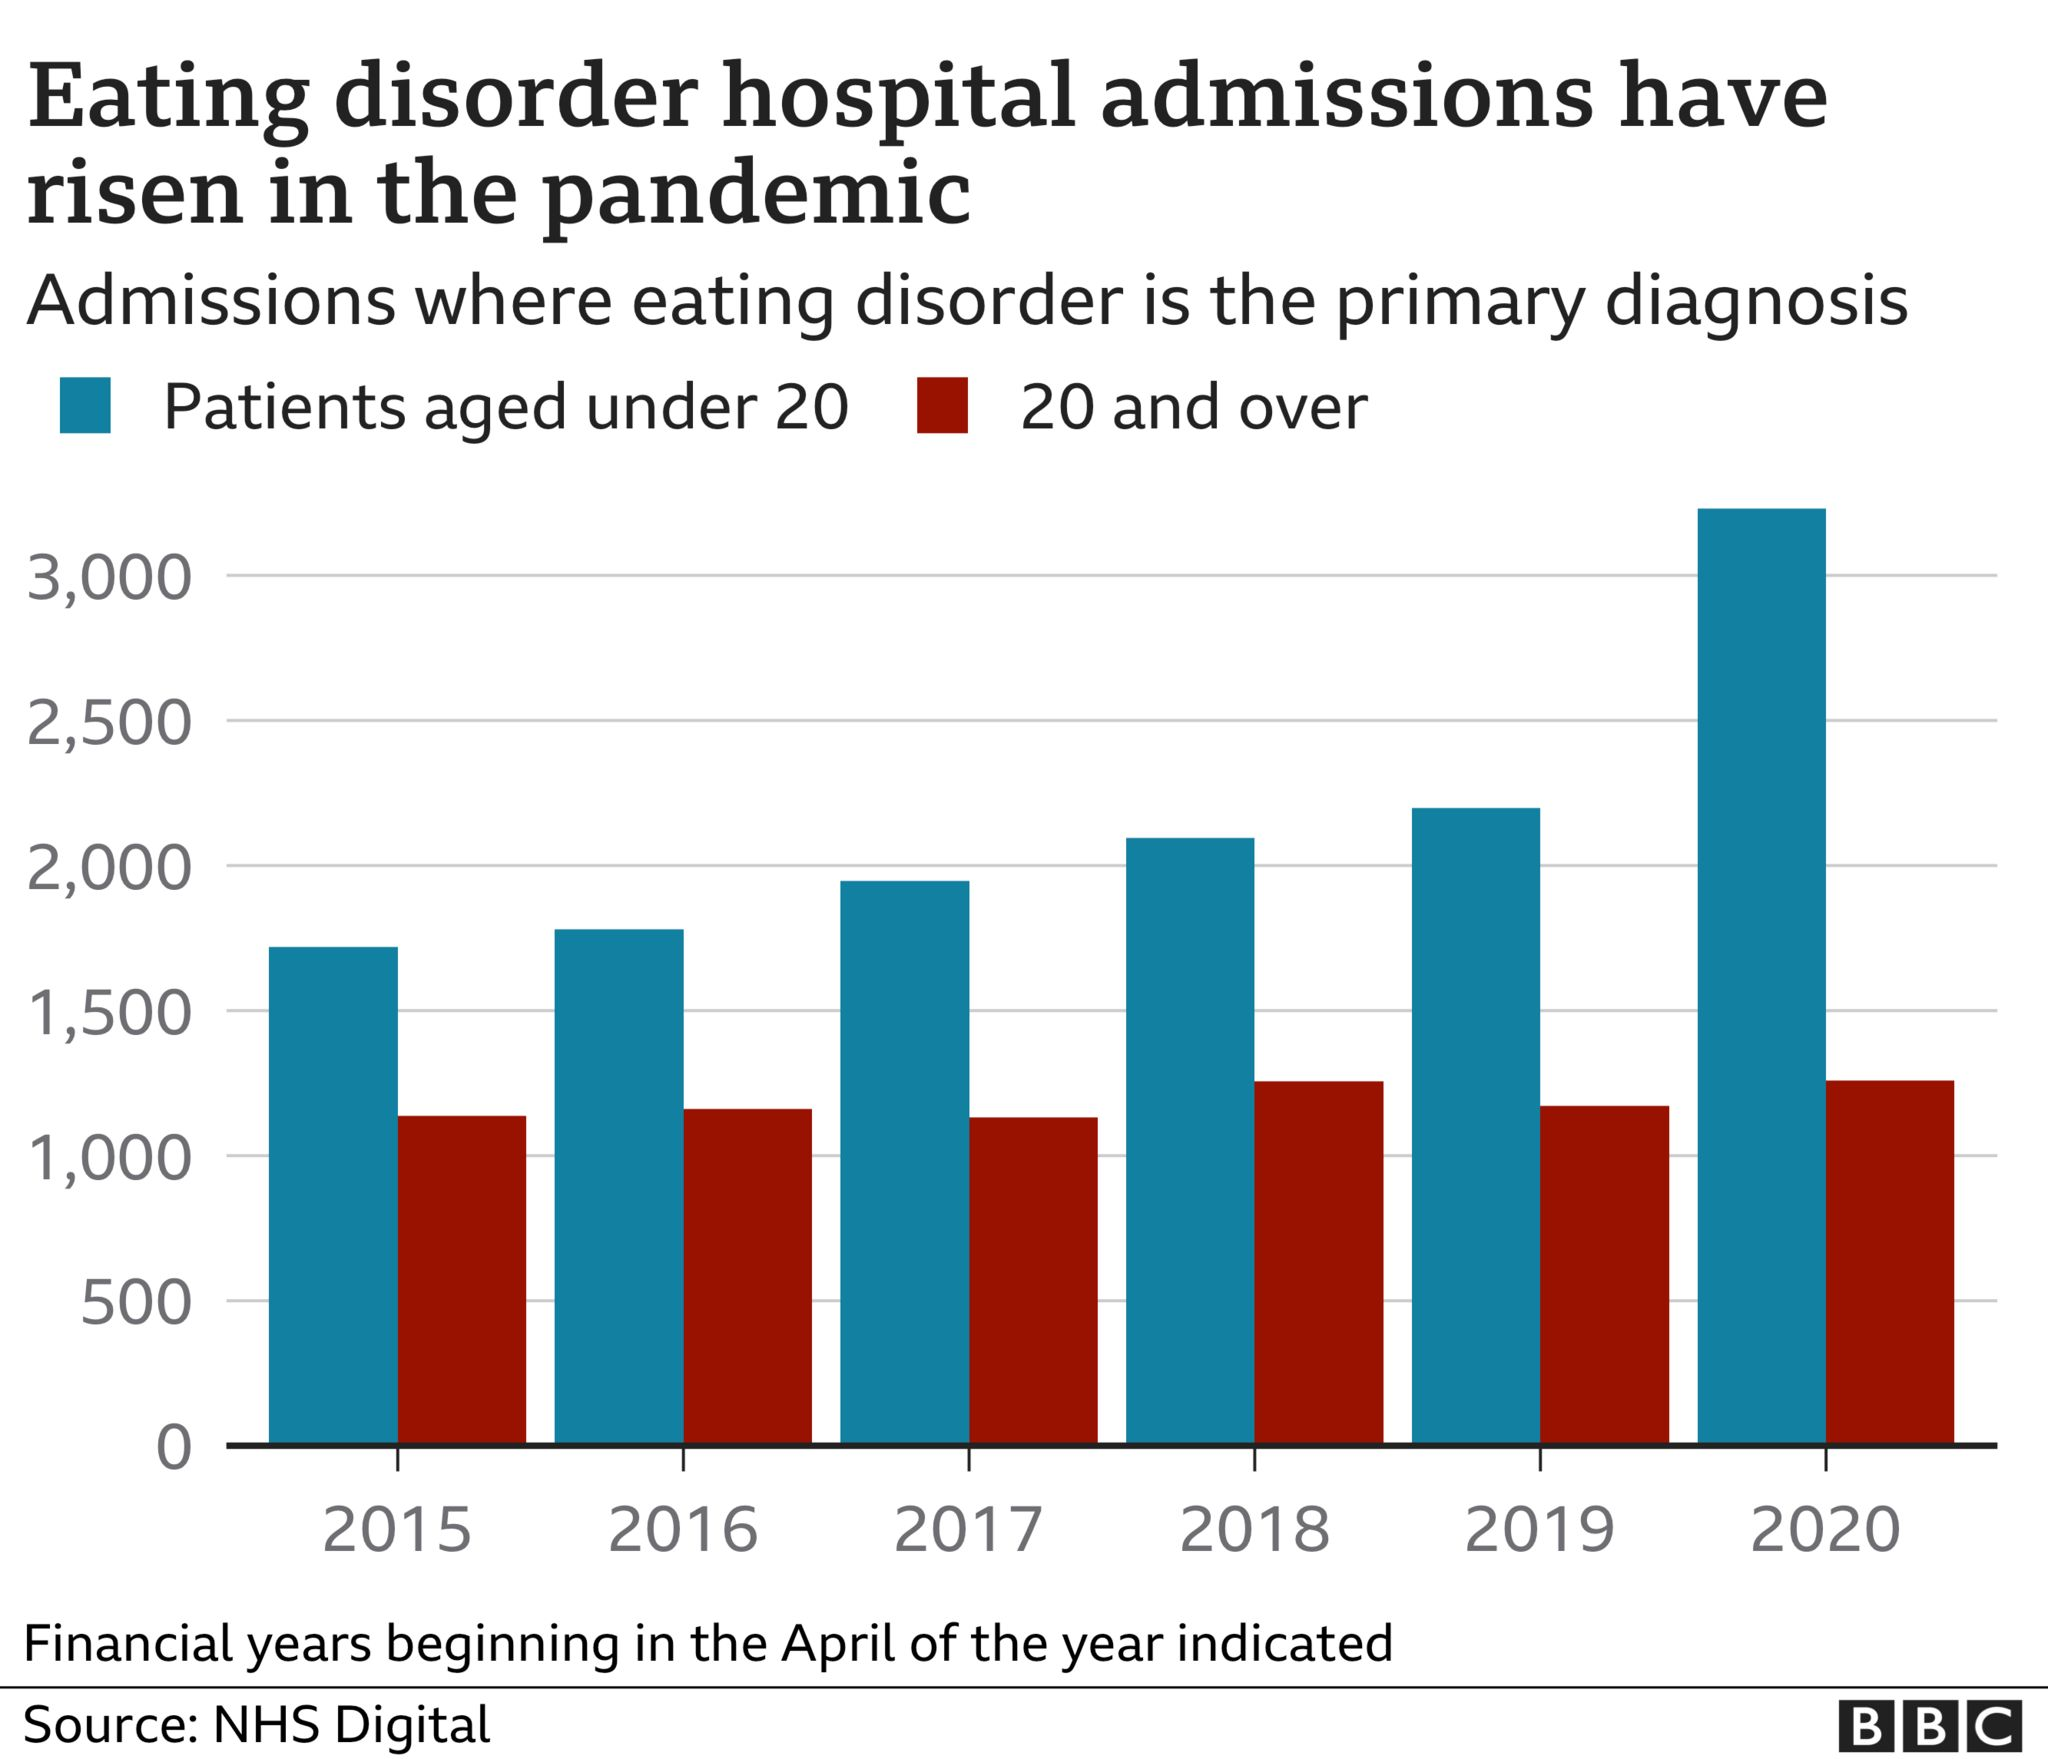 Chart showing eating disorder hospital admissions have risen during the pandemic